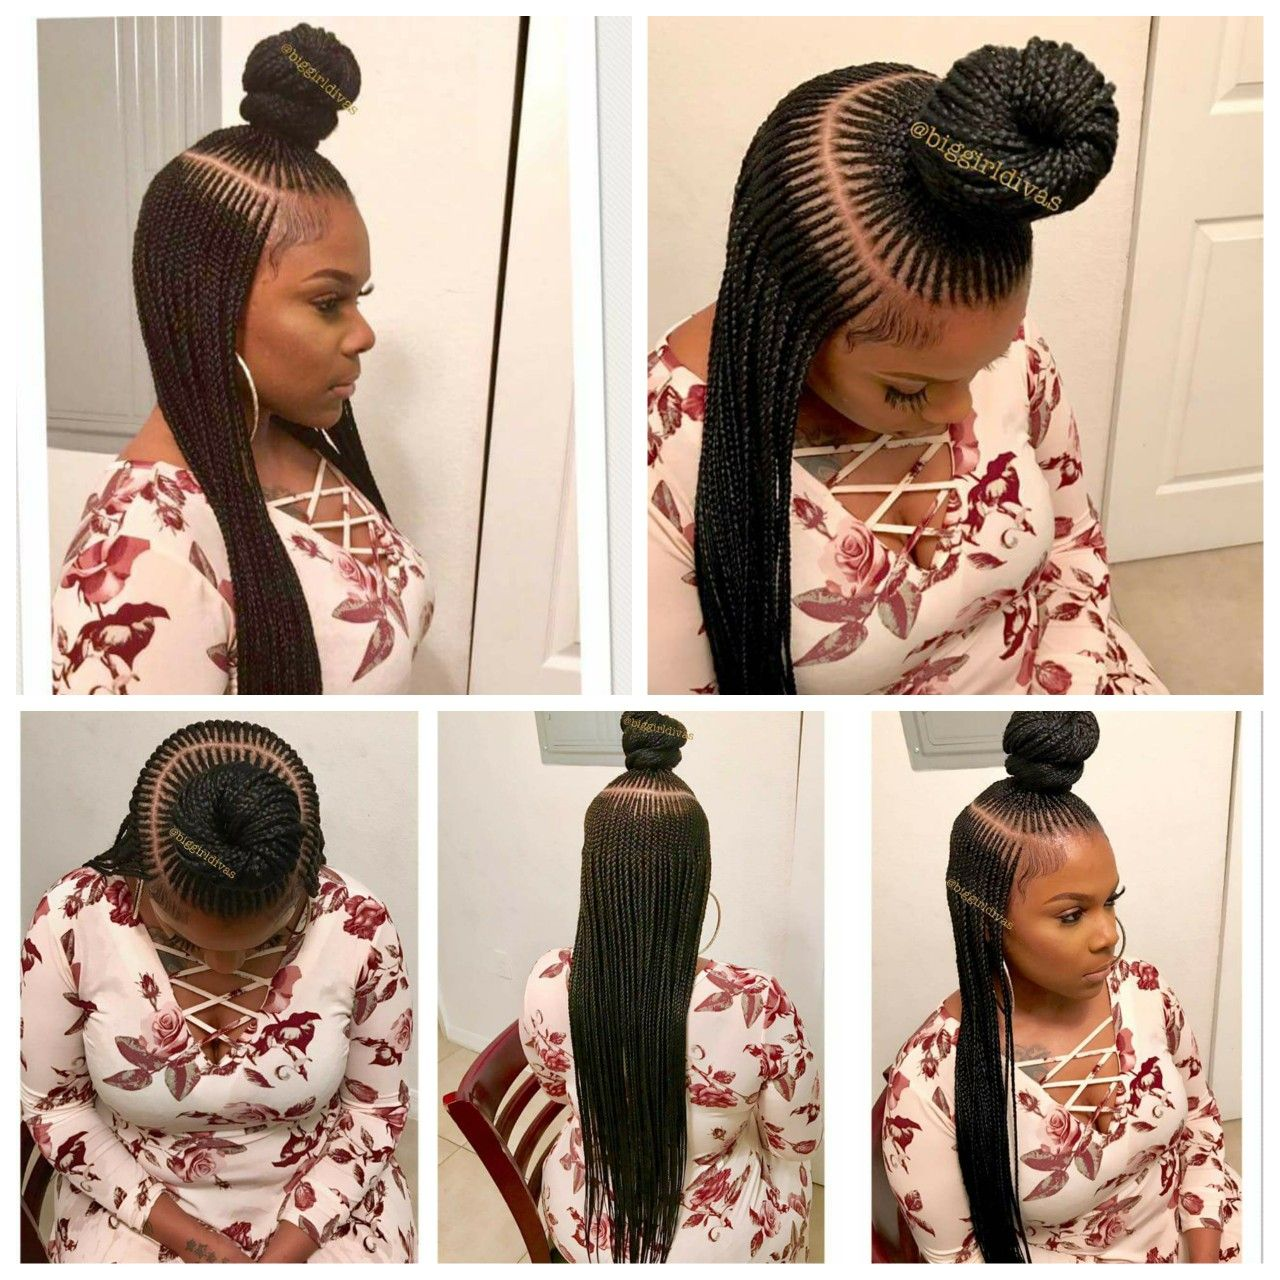 i saw these on facebook, ket braids is what they are called. the